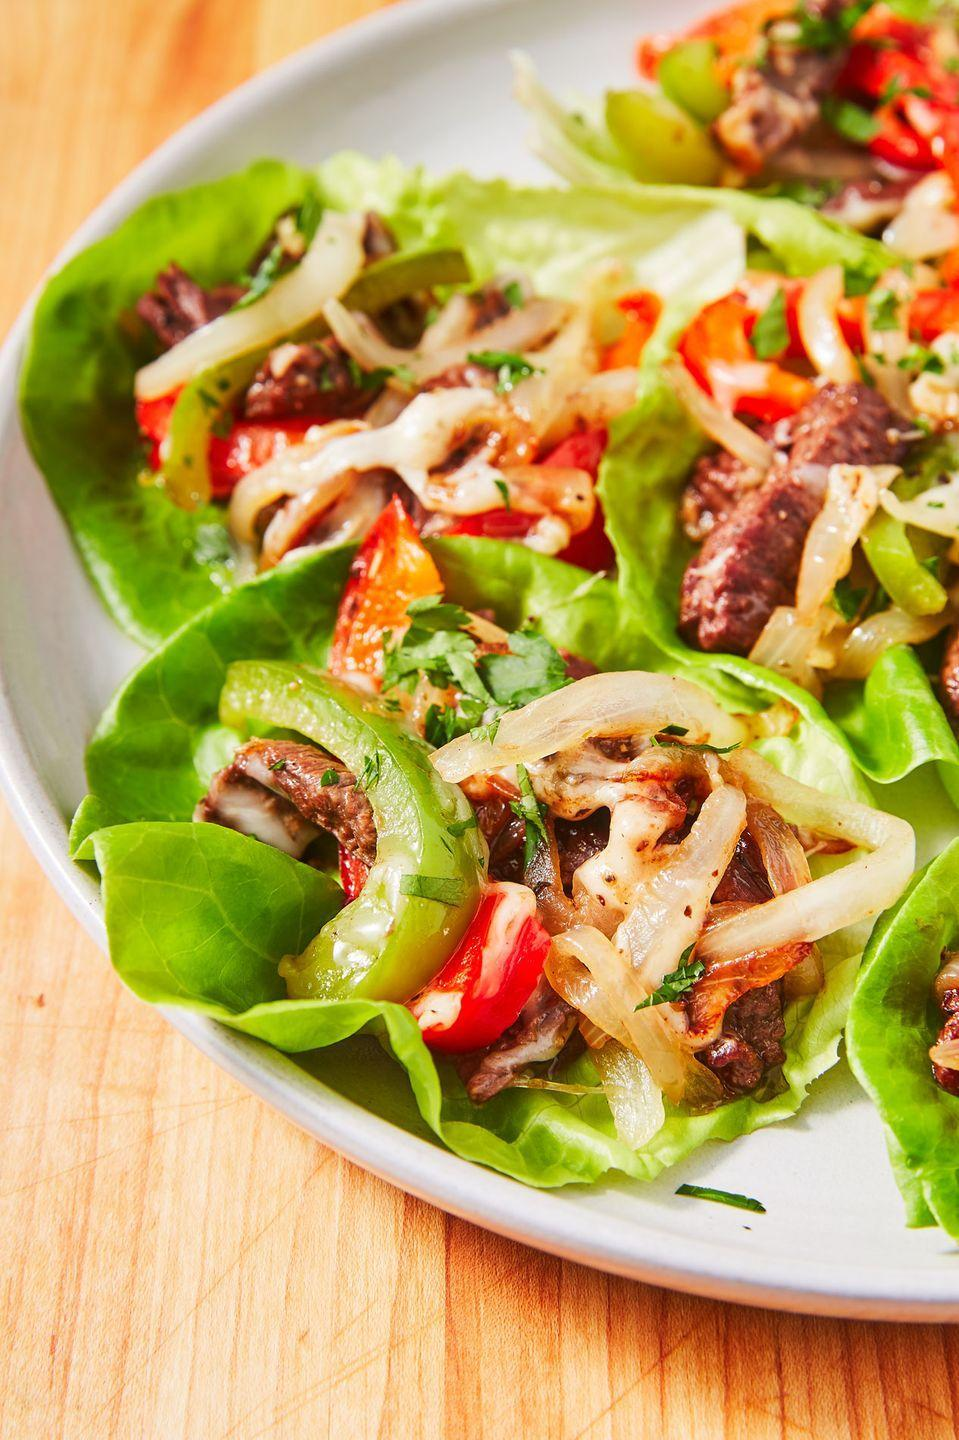 """<p>No carb Philly cheesesteaks with a twist. </p><p>Get the recipe from <a href=""""https://www.delish.com/cooking/recipe-ideas/recipes/a57493/no-carb-philly-cheesesteaks/"""" rel=""""nofollow noopener"""" target=""""_blank"""" data-ylk=""""slk:Delish"""" class=""""link rapid-noclick-resp"""">Delish</a>.</p>"""